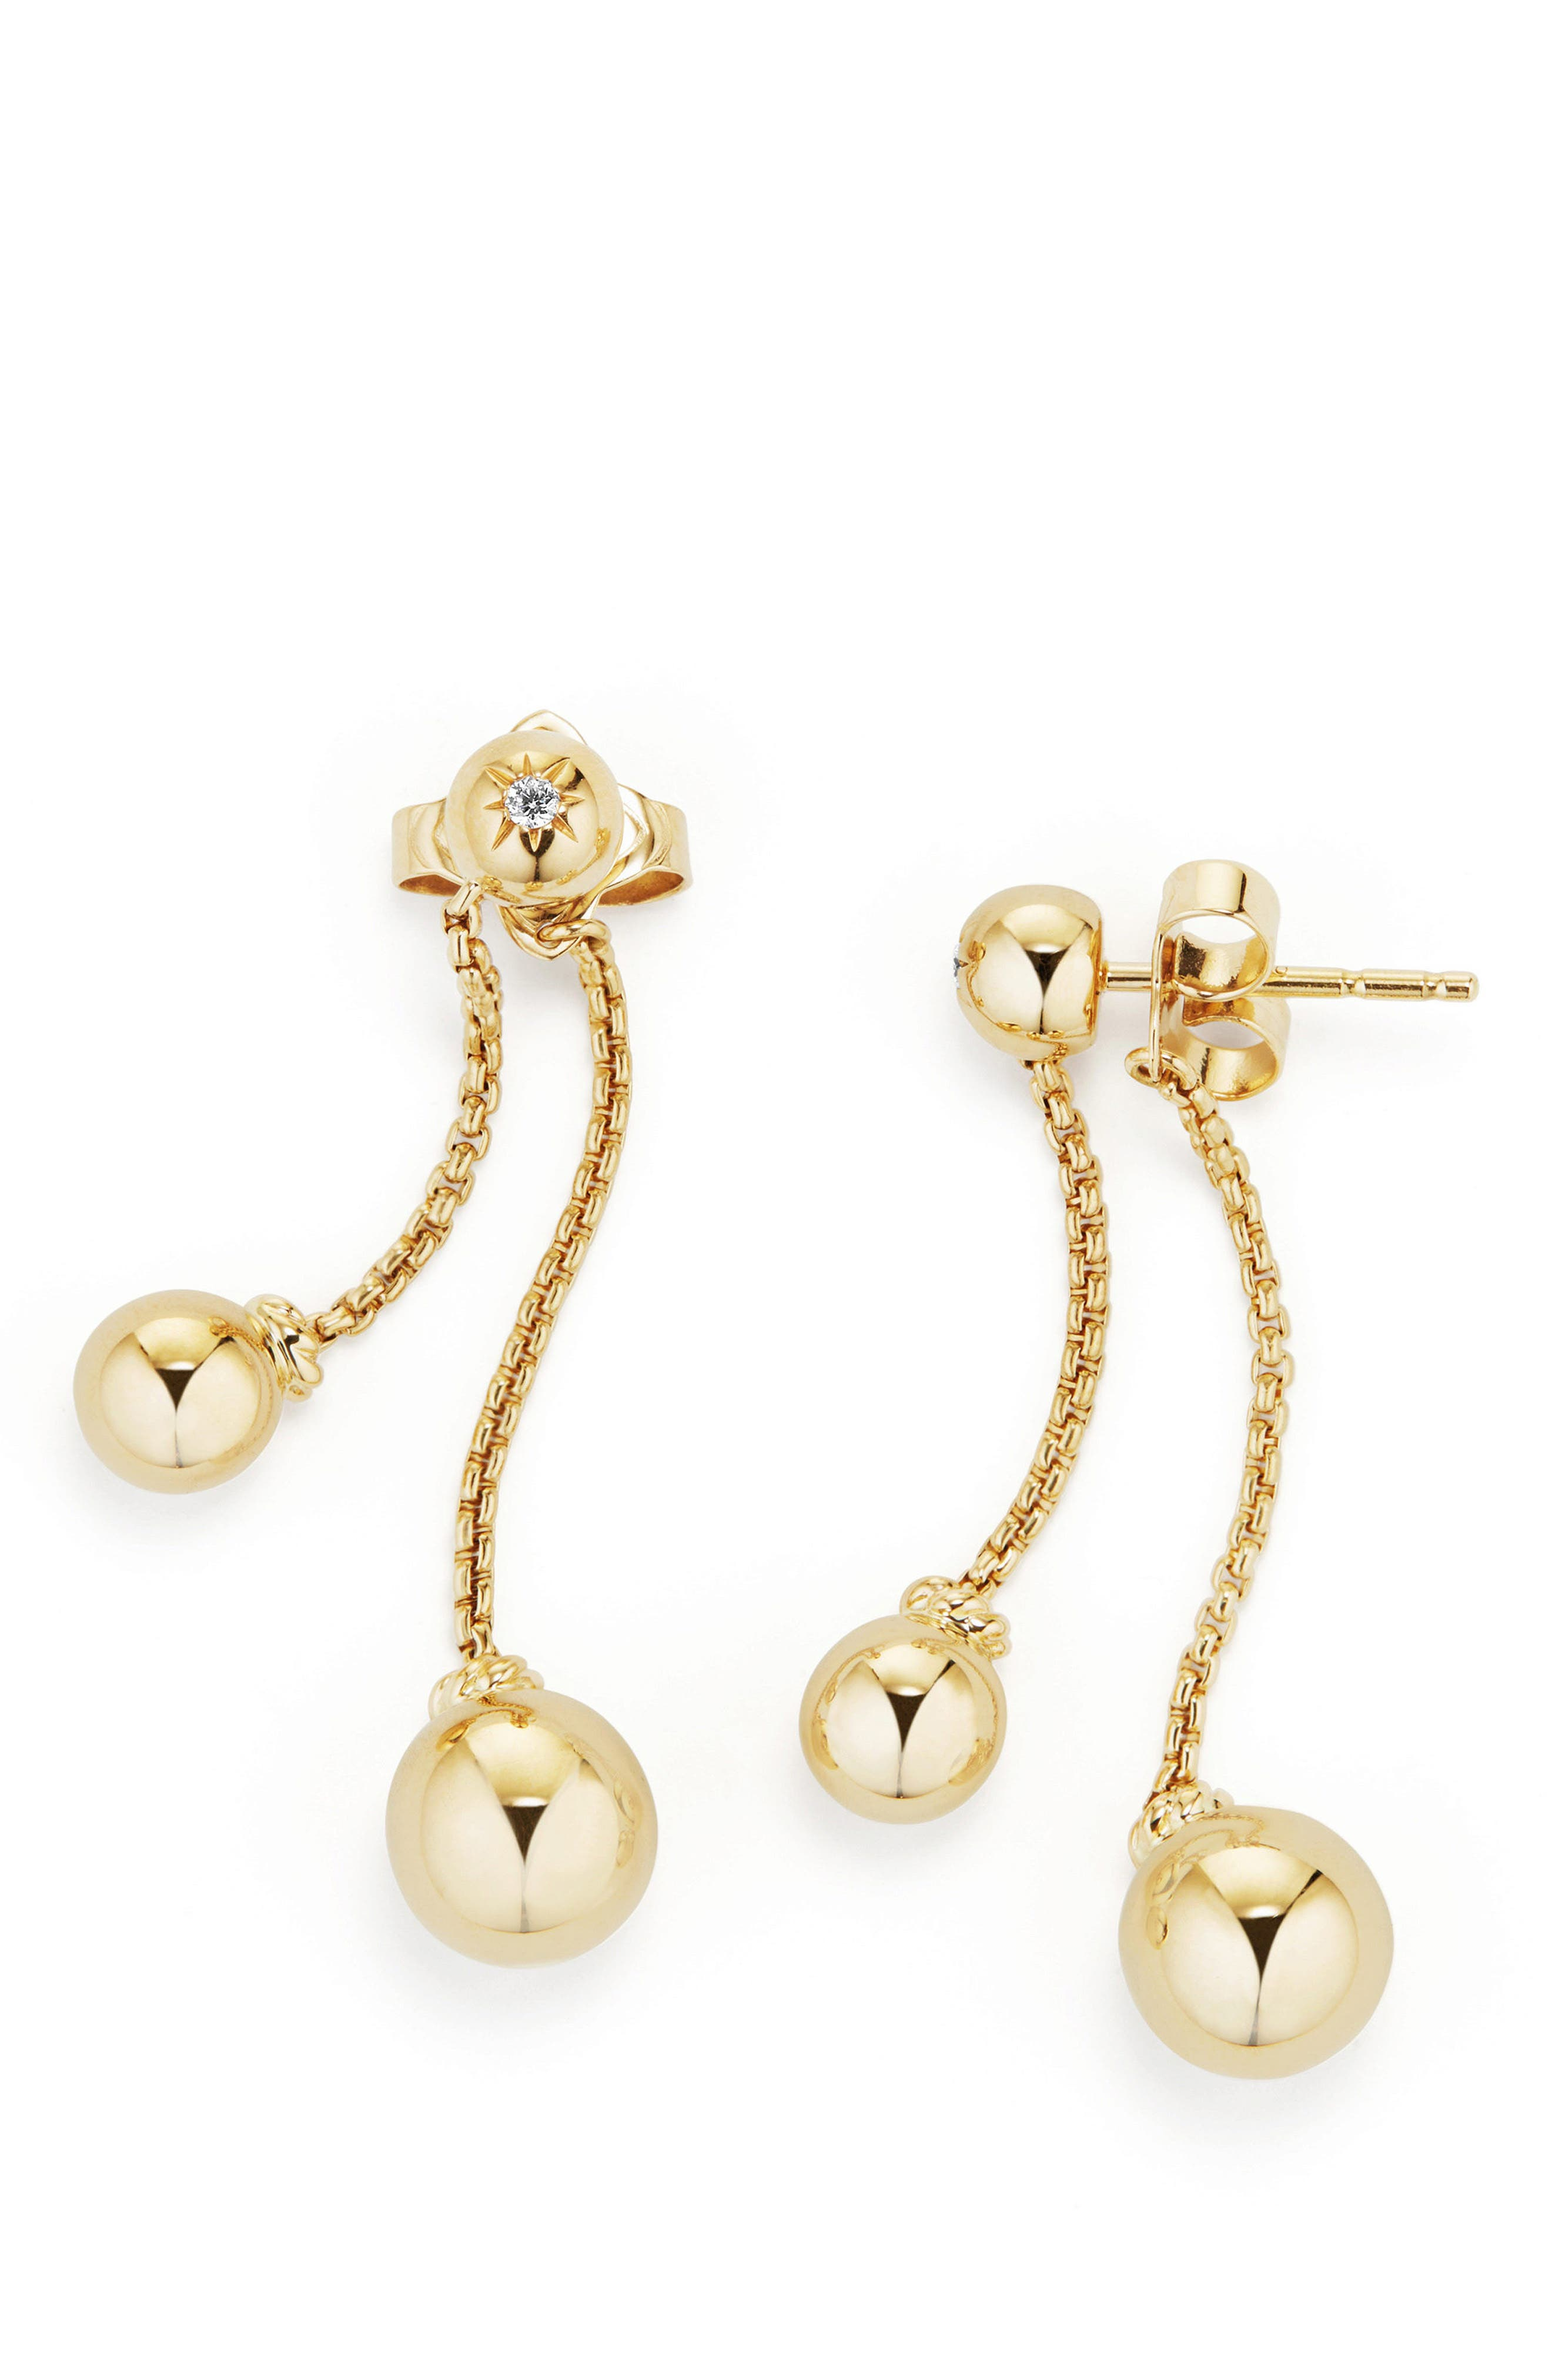 Solari Chain Drop Earrings with Diamonds in 18K Gold,                             Alternate thumbnail 2, color,                             710